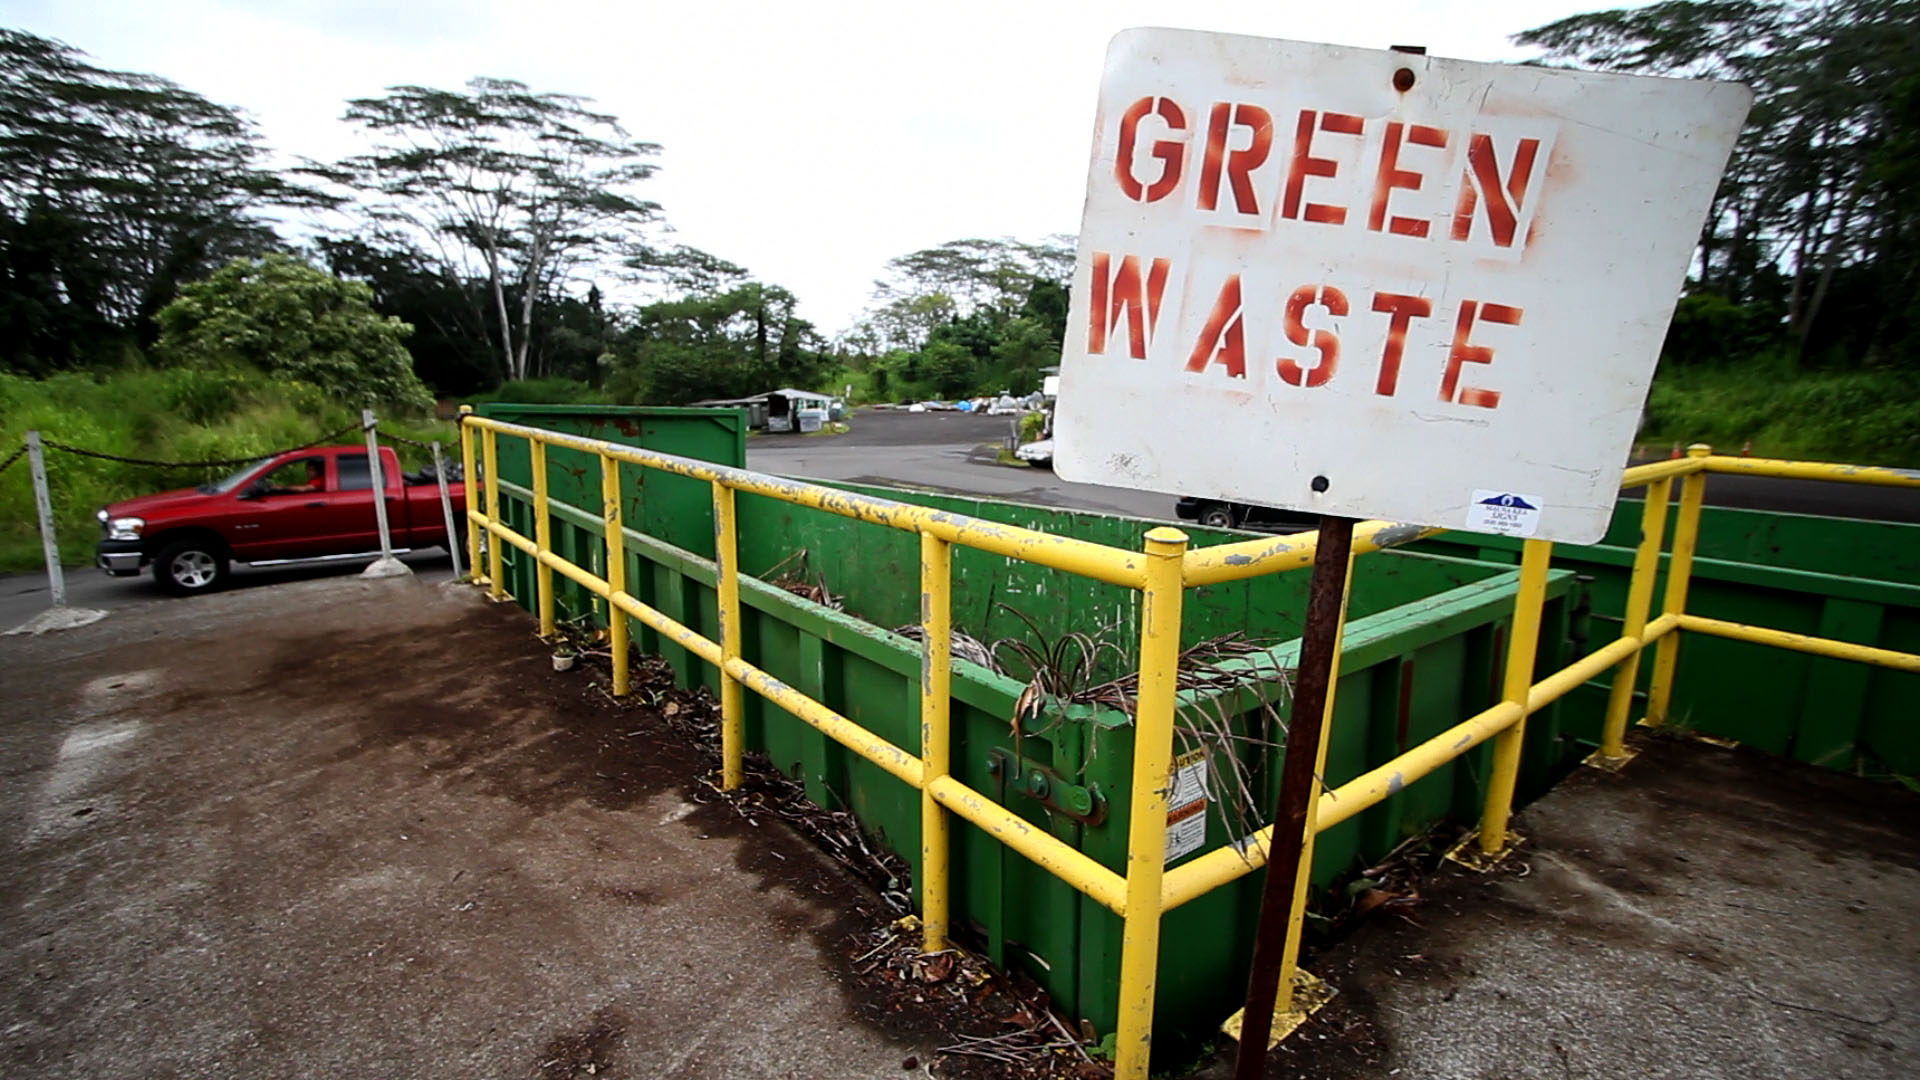 Construction will temporarily put a halt to green waste and scrap metal collections at the Keaau Solid Waste Transfer Station beginning Monday, May 9, 2011.